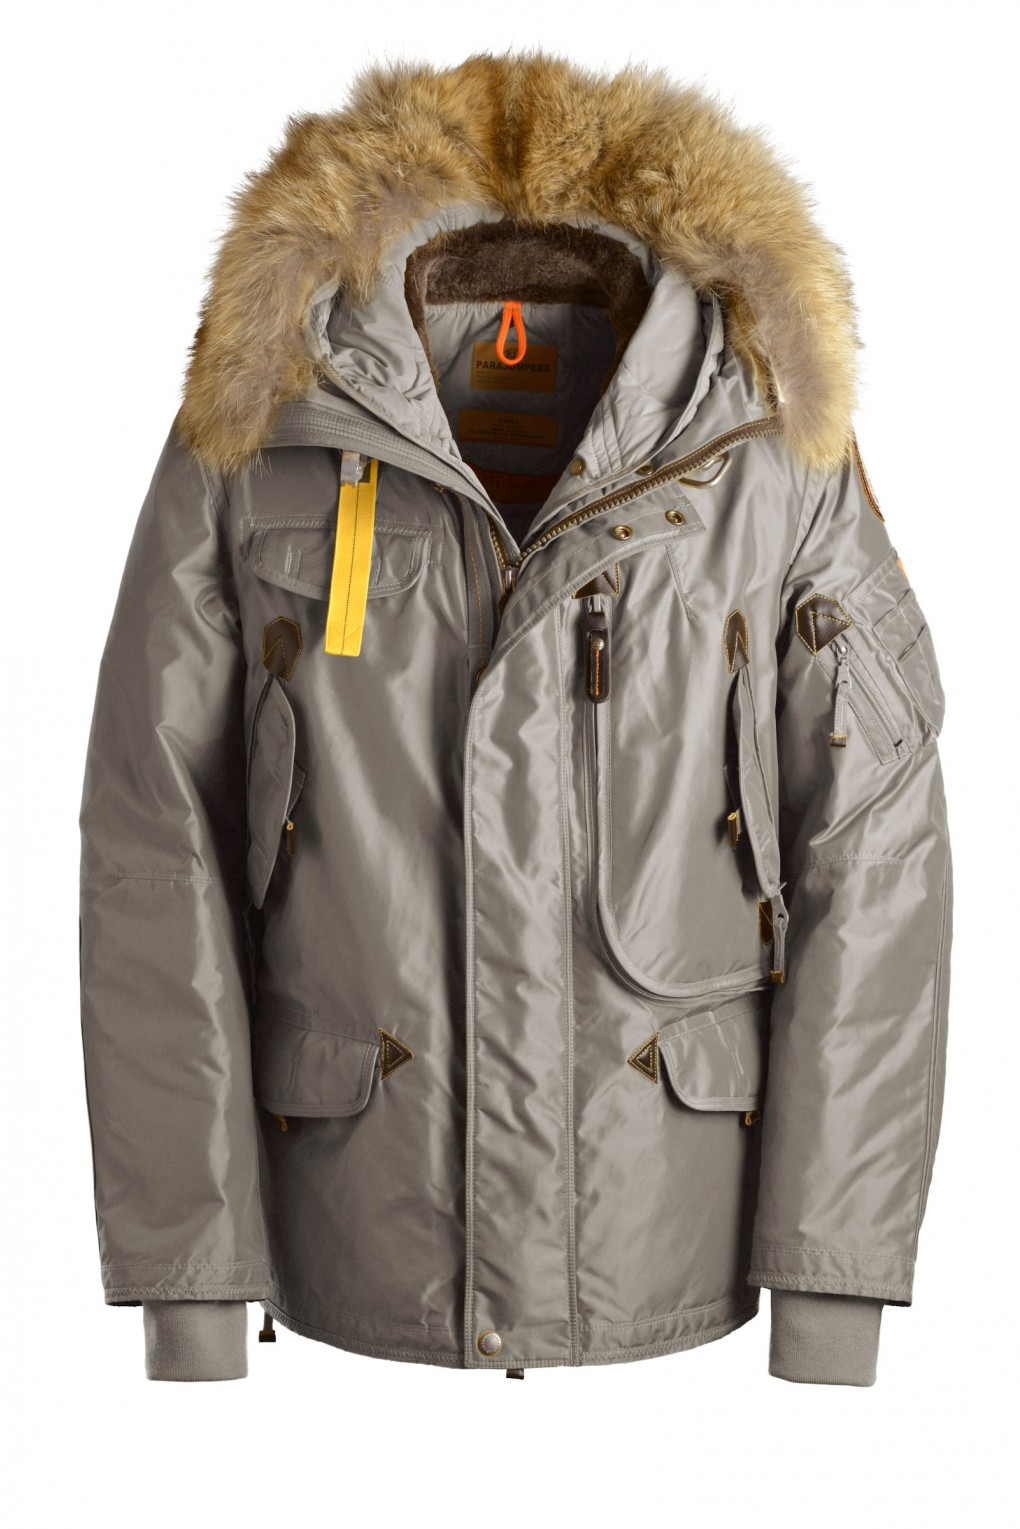 parajumpers RIGHT HAND man outerwear Cappuccino